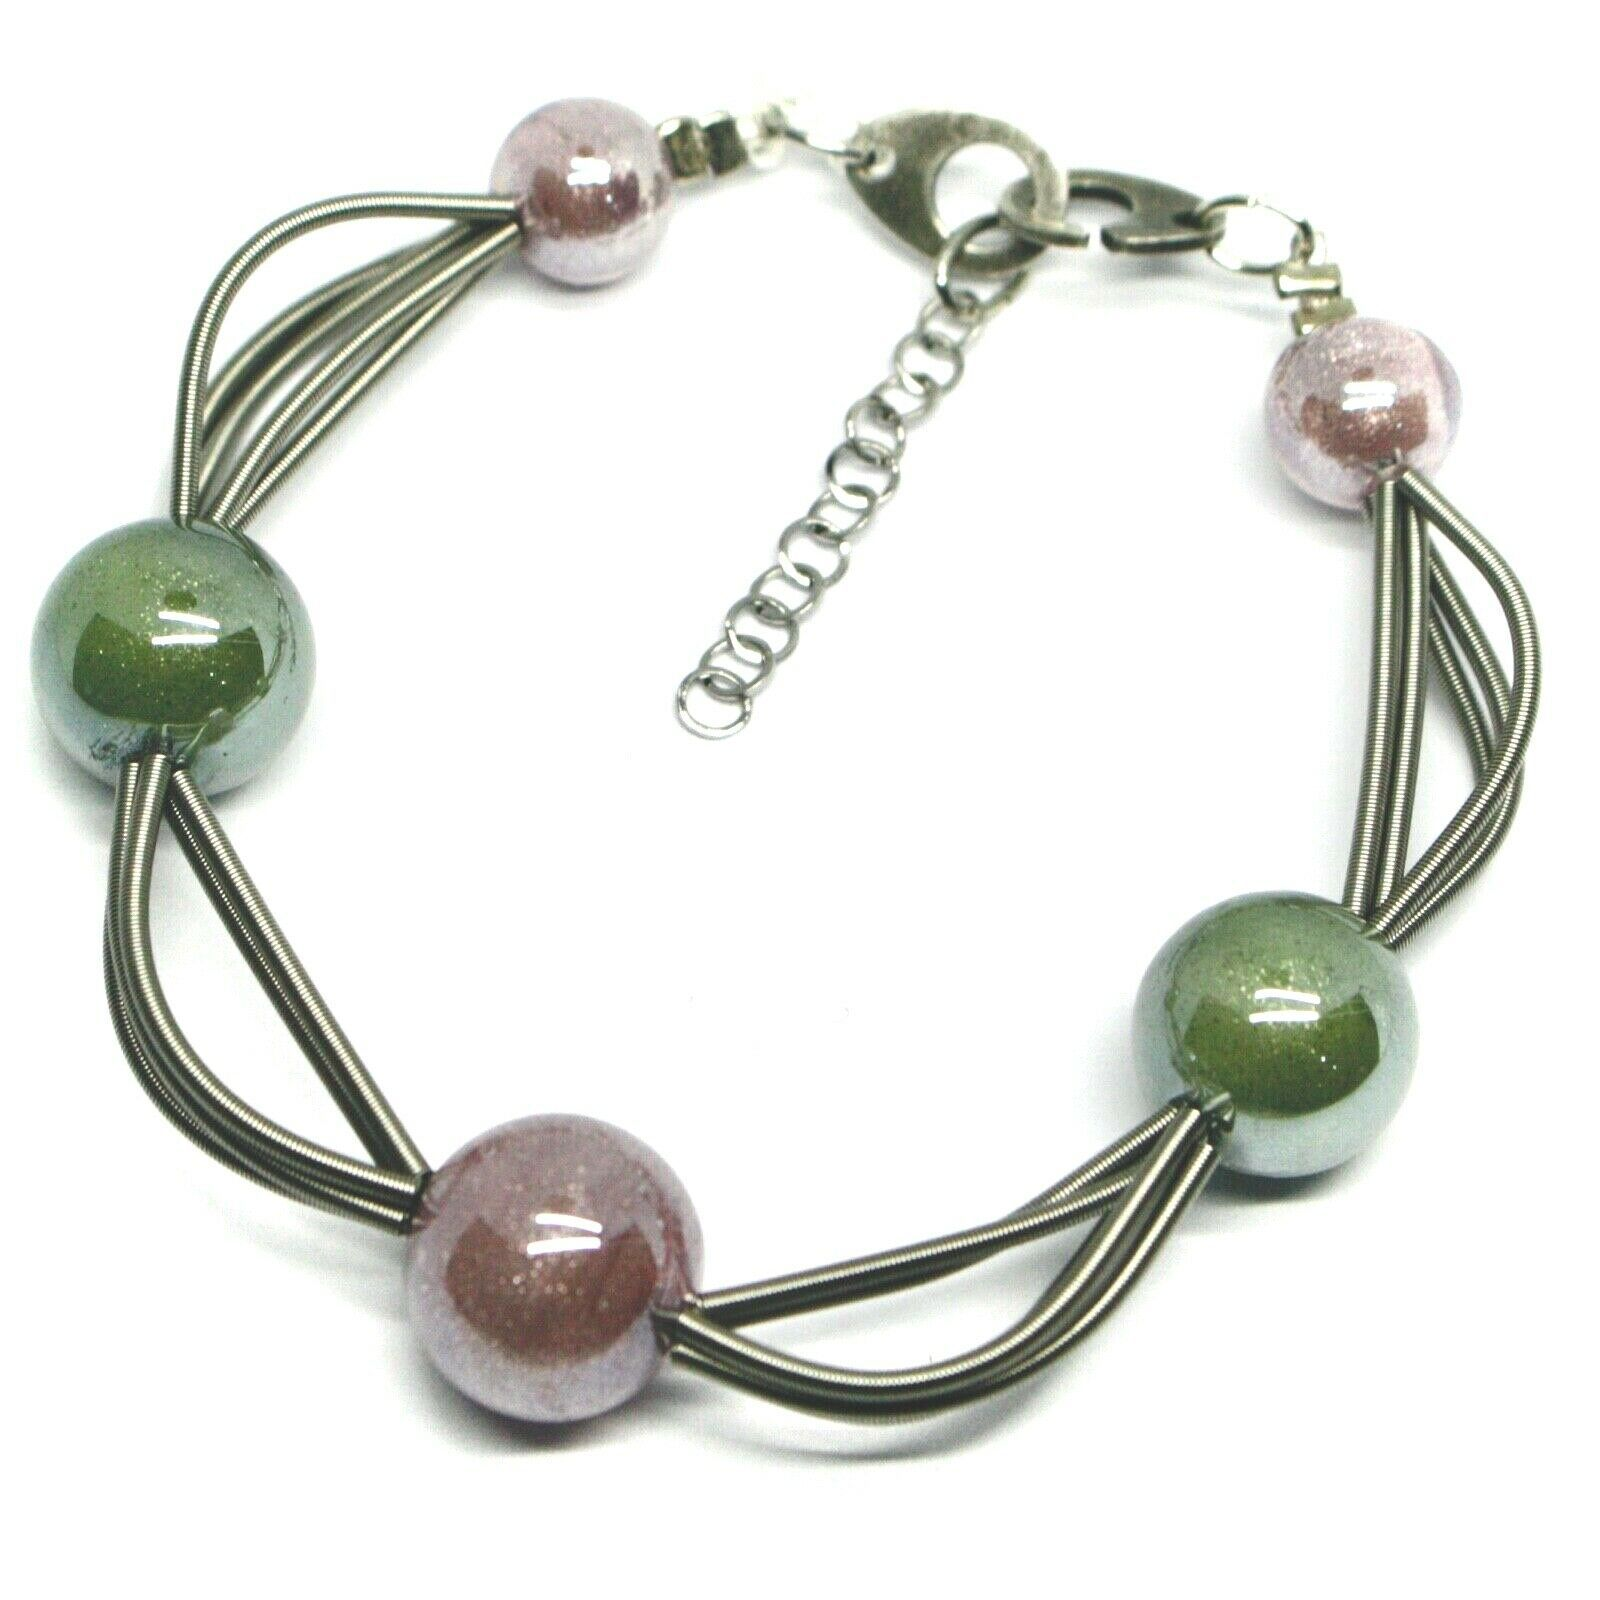 "MULTI WIRES BRACELET GREEN PURPLE SPHERES MURANO GLASS, 20cm 7.9"", ITALY MADE"